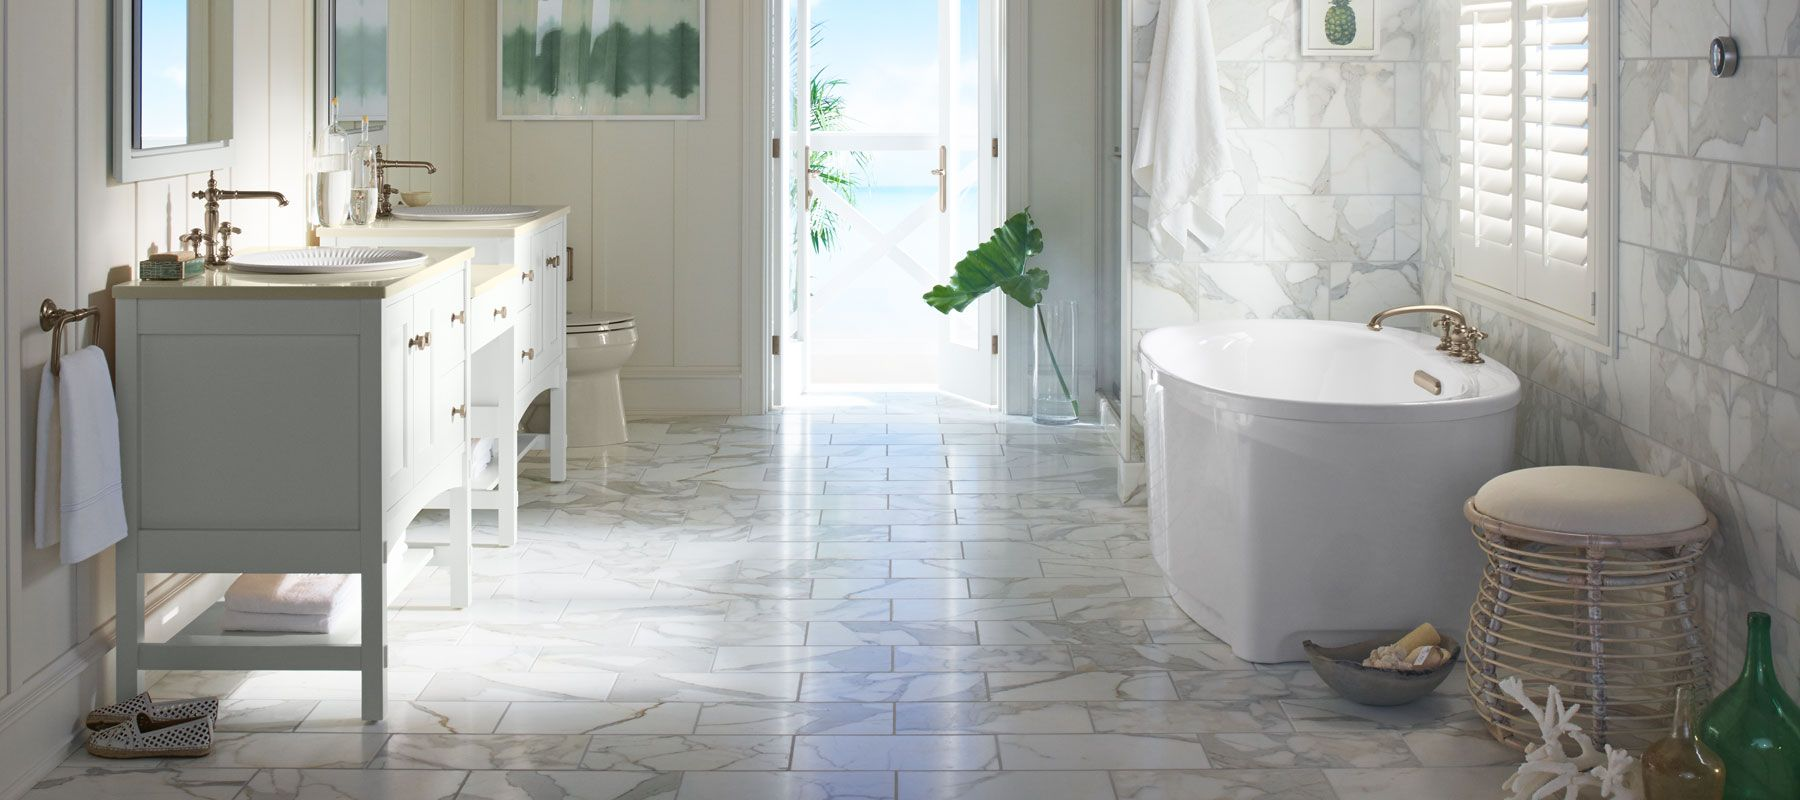 Bathroom Remodel Ideas Kohler floor plan options | bathroom ideas & planning | bathroom | kohler